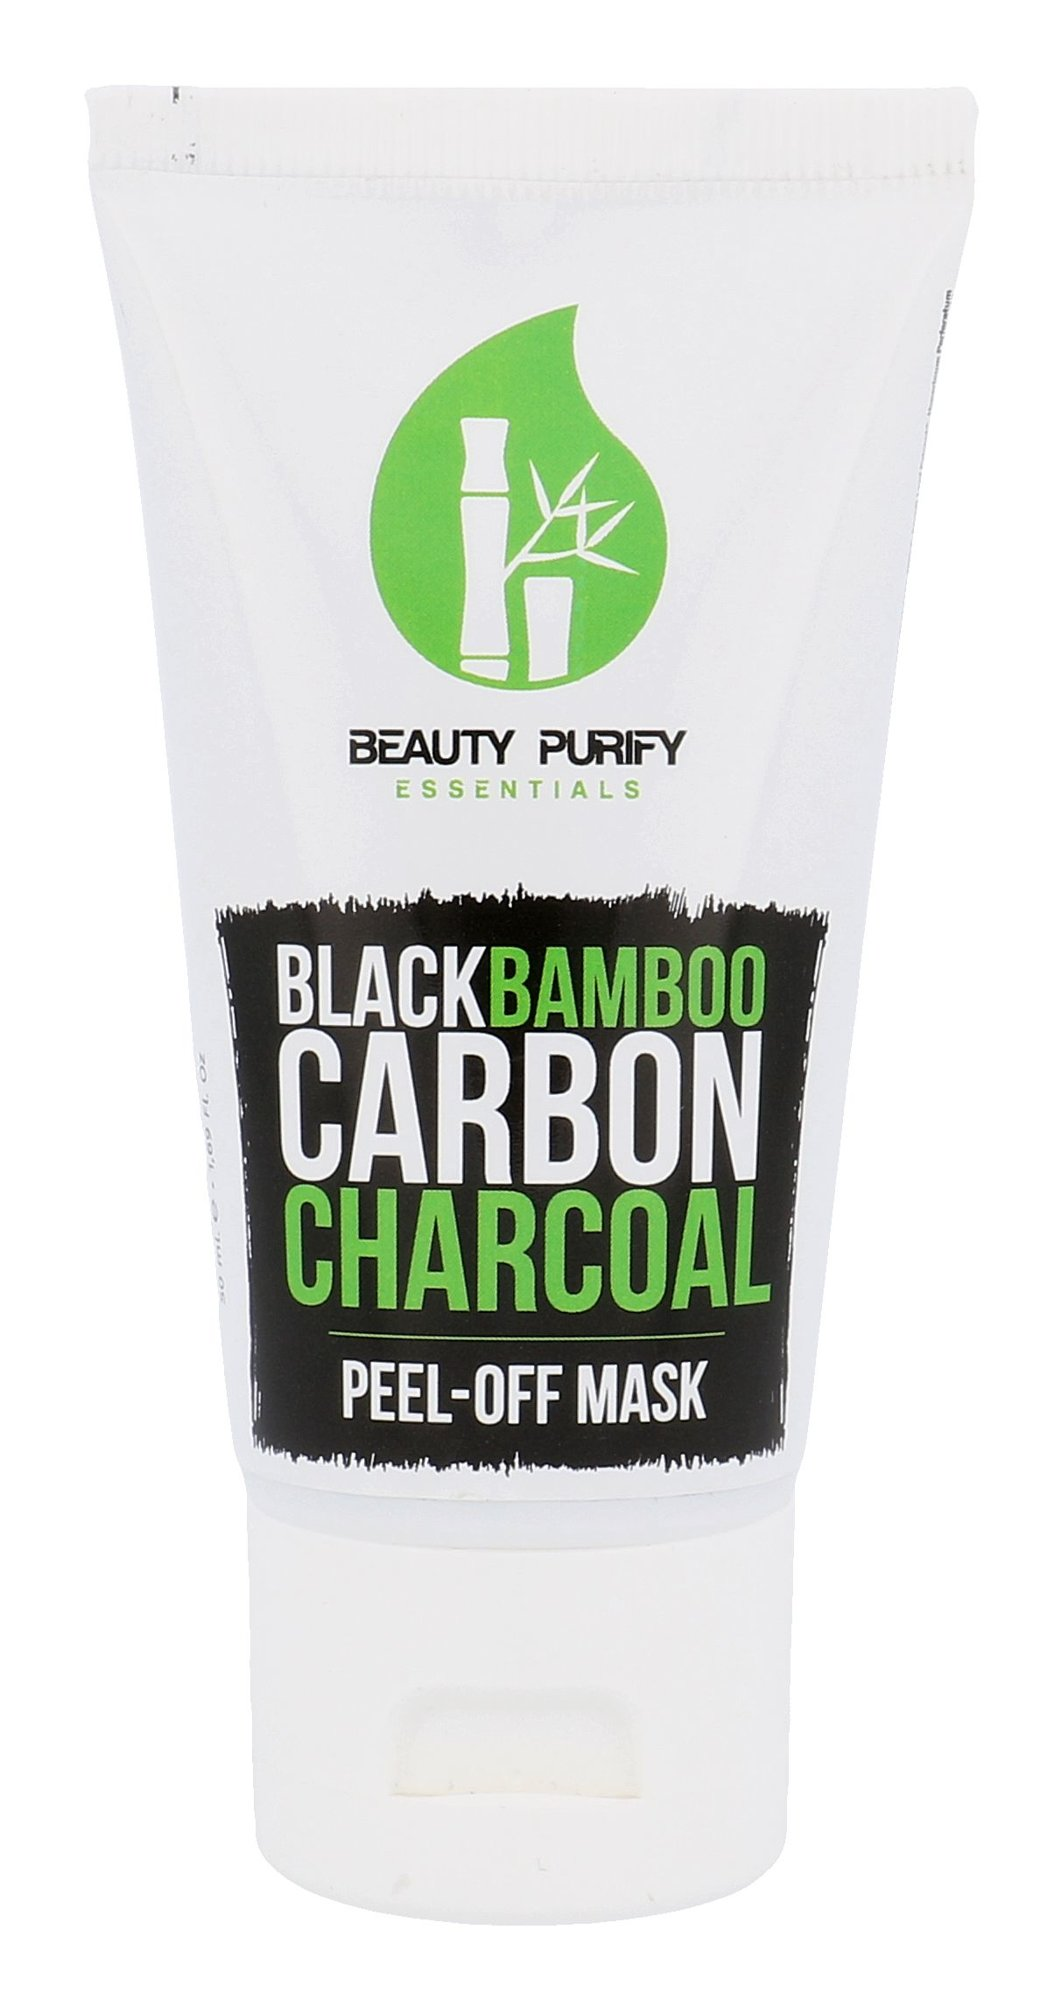 Diet Esthetic Black Bamboo Carbon Charcoal Cosmetic 50ml  Peel-Off Mask